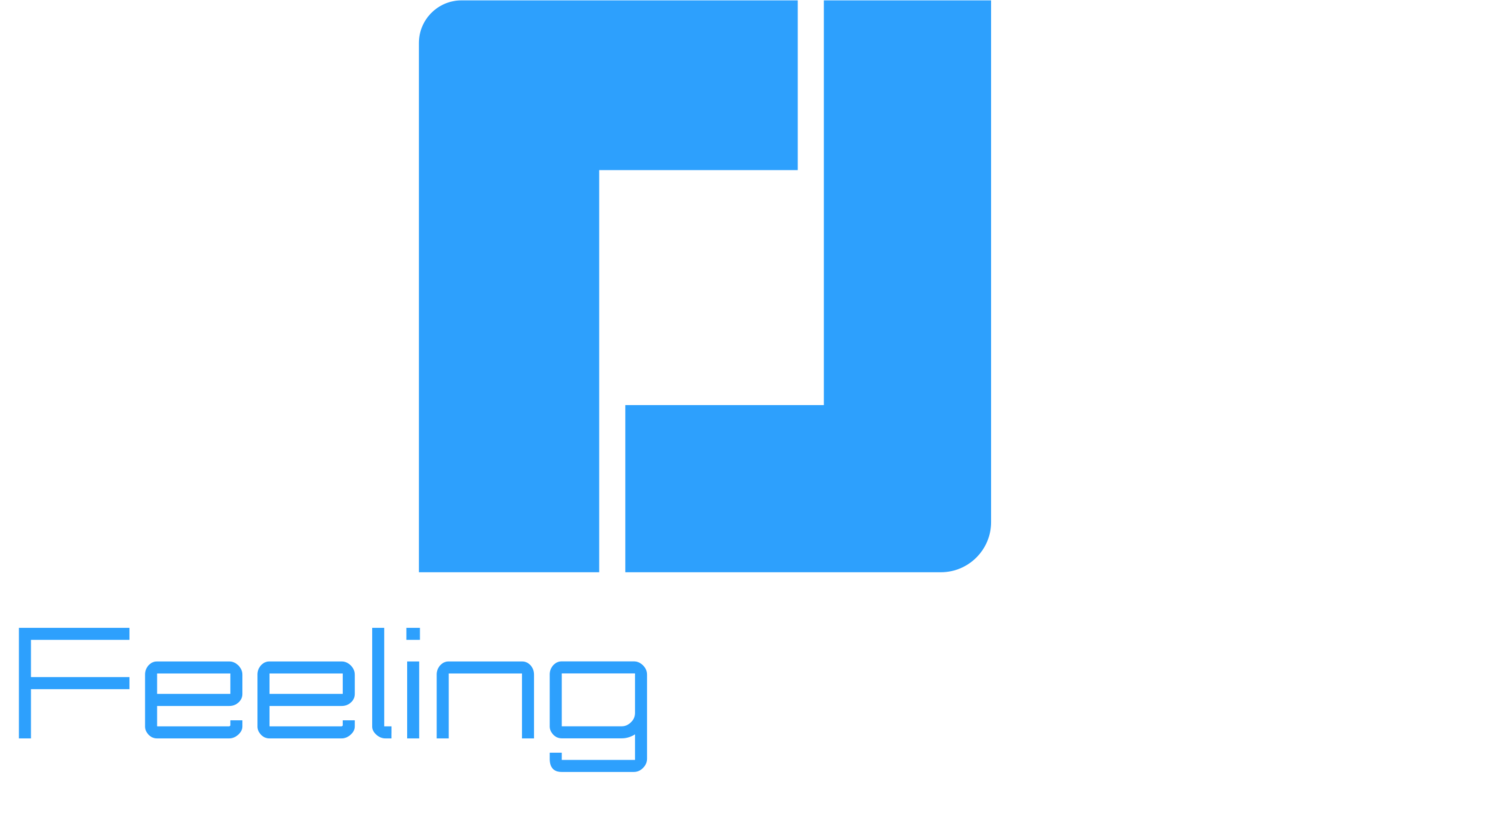 Feeling Wedding Films | Washington D.C. Wedding Videographer | Virginia | NYC | Maryland | Philadelphia | New York